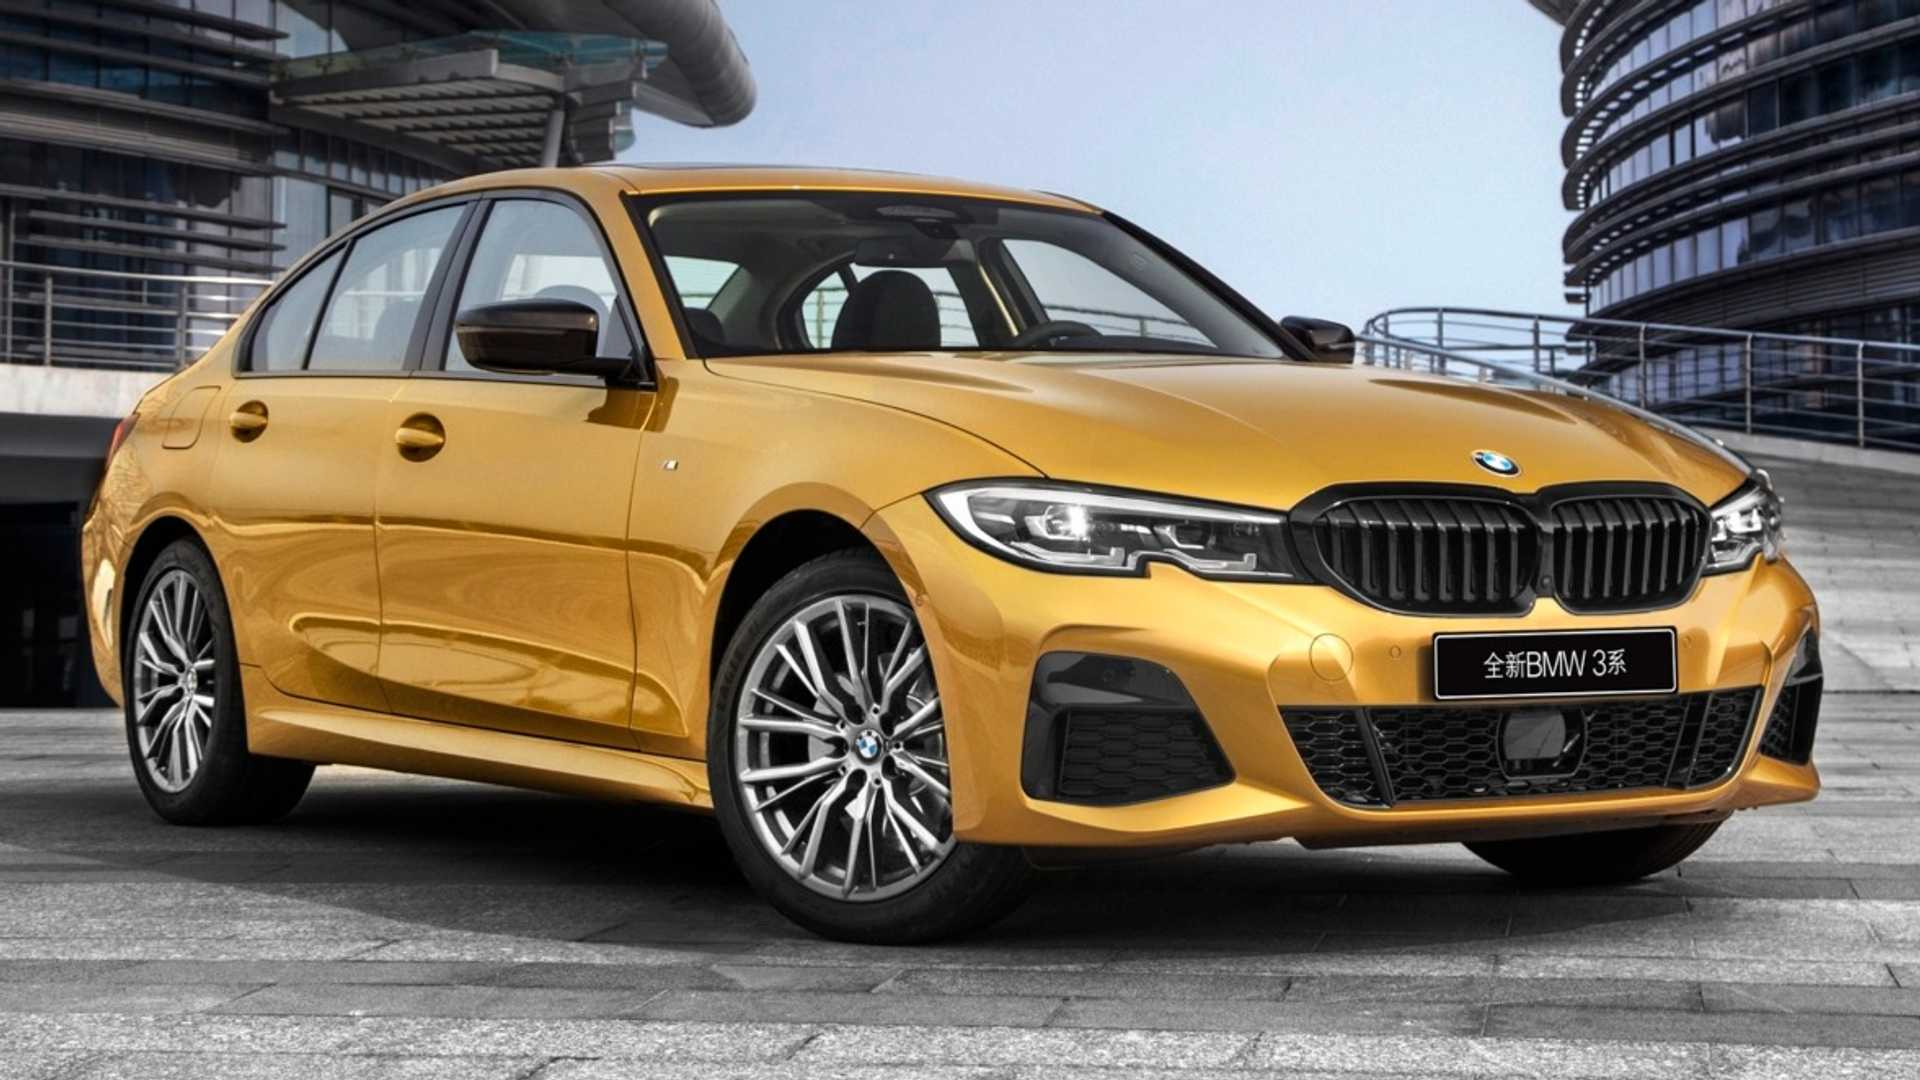 68 The Best 2019 BMW 3 Series Brings New Concept